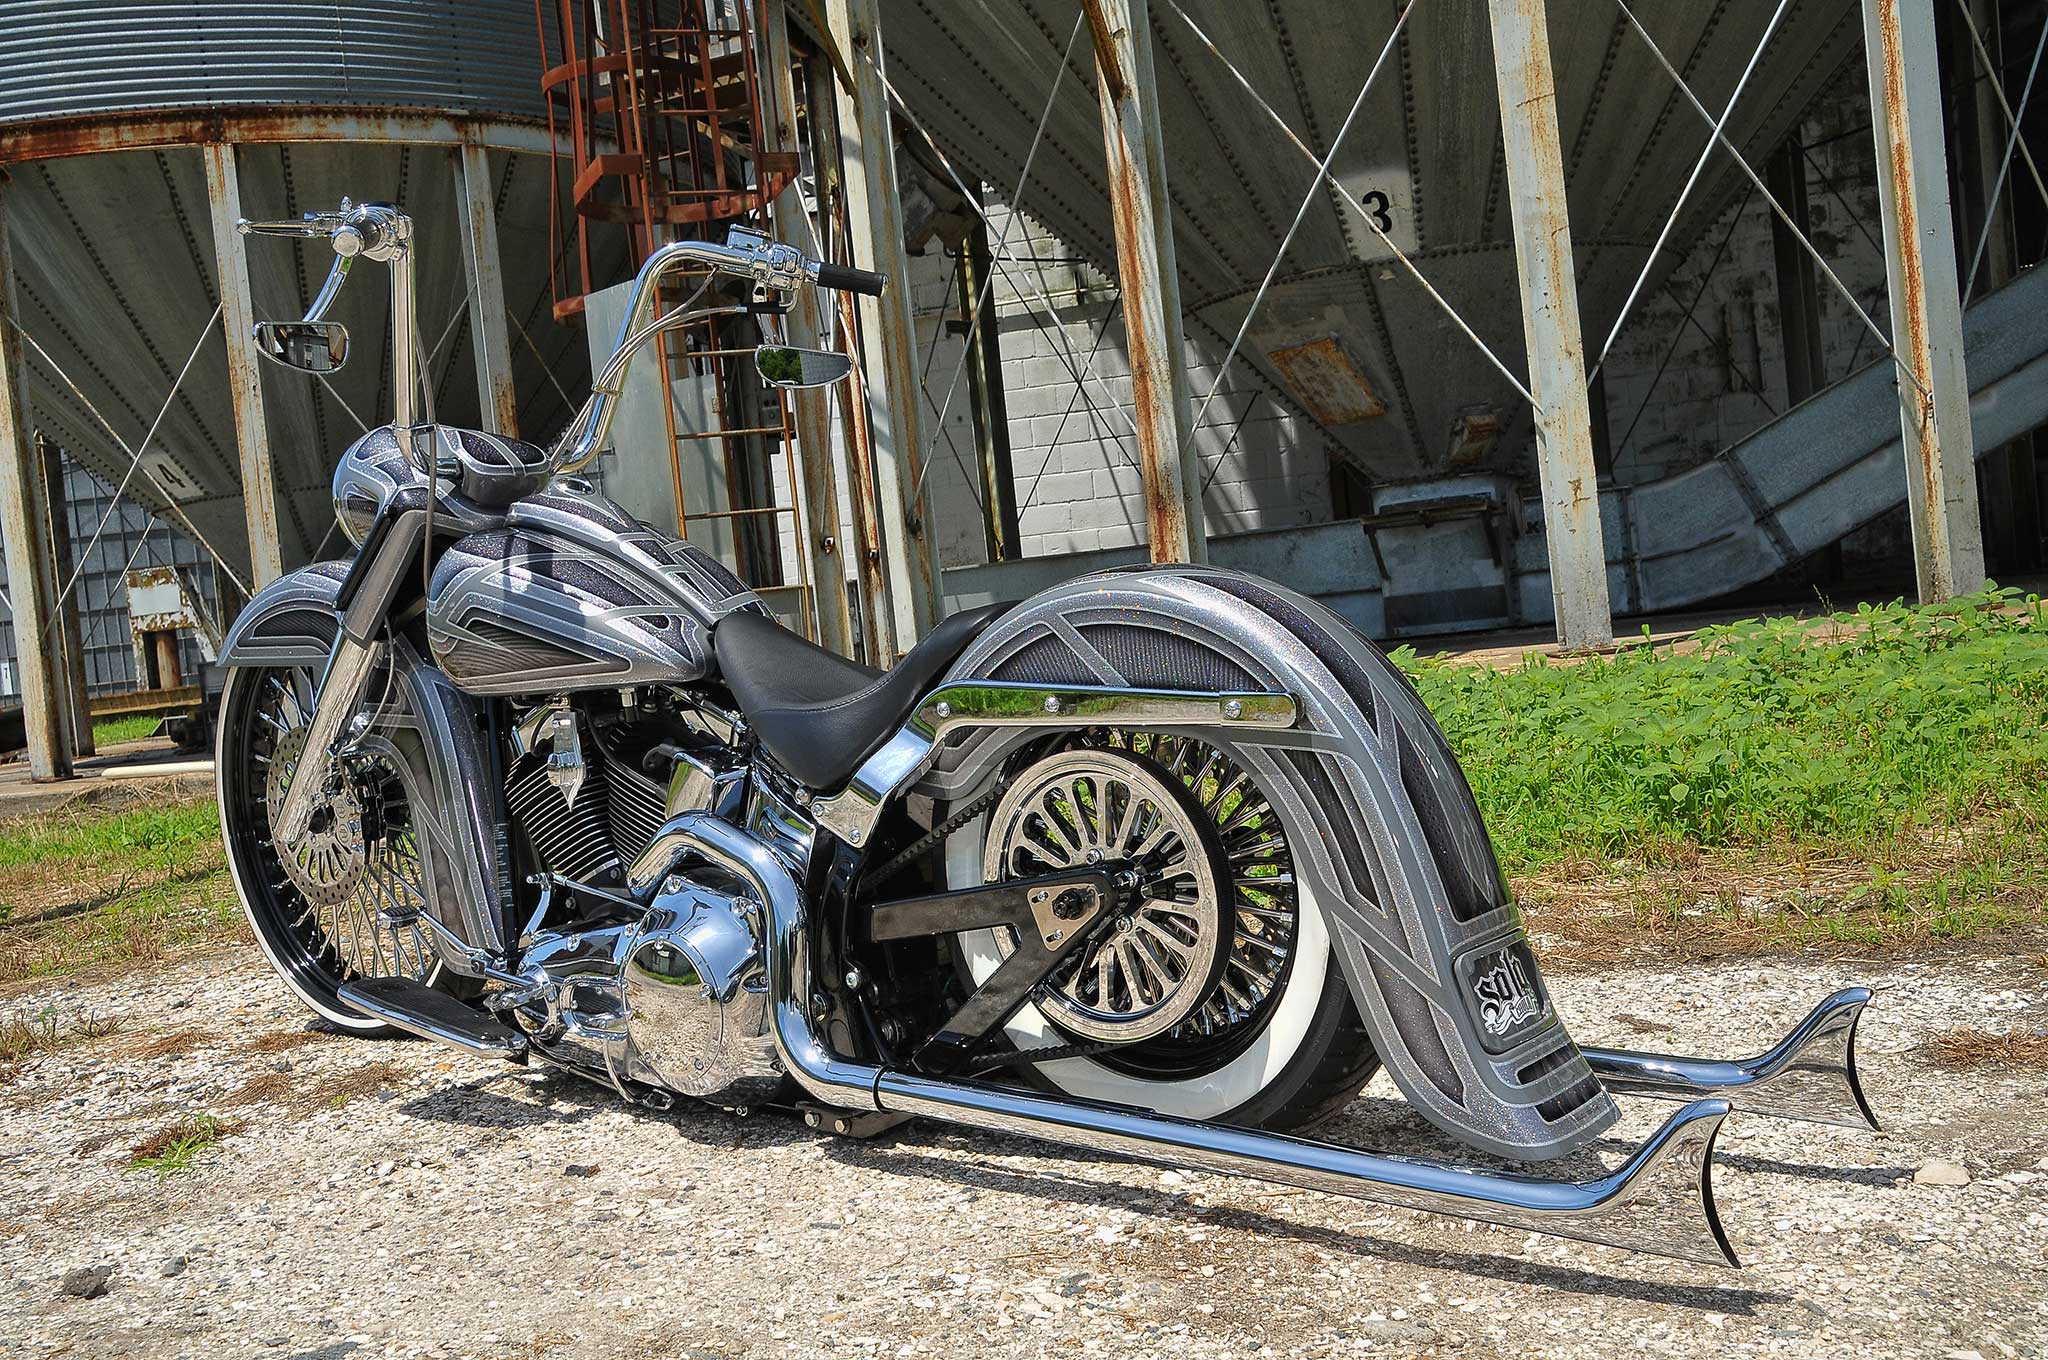 2006 Harley Davidson Softail Deluxe After Six Fishtail Exhaust Lowrider